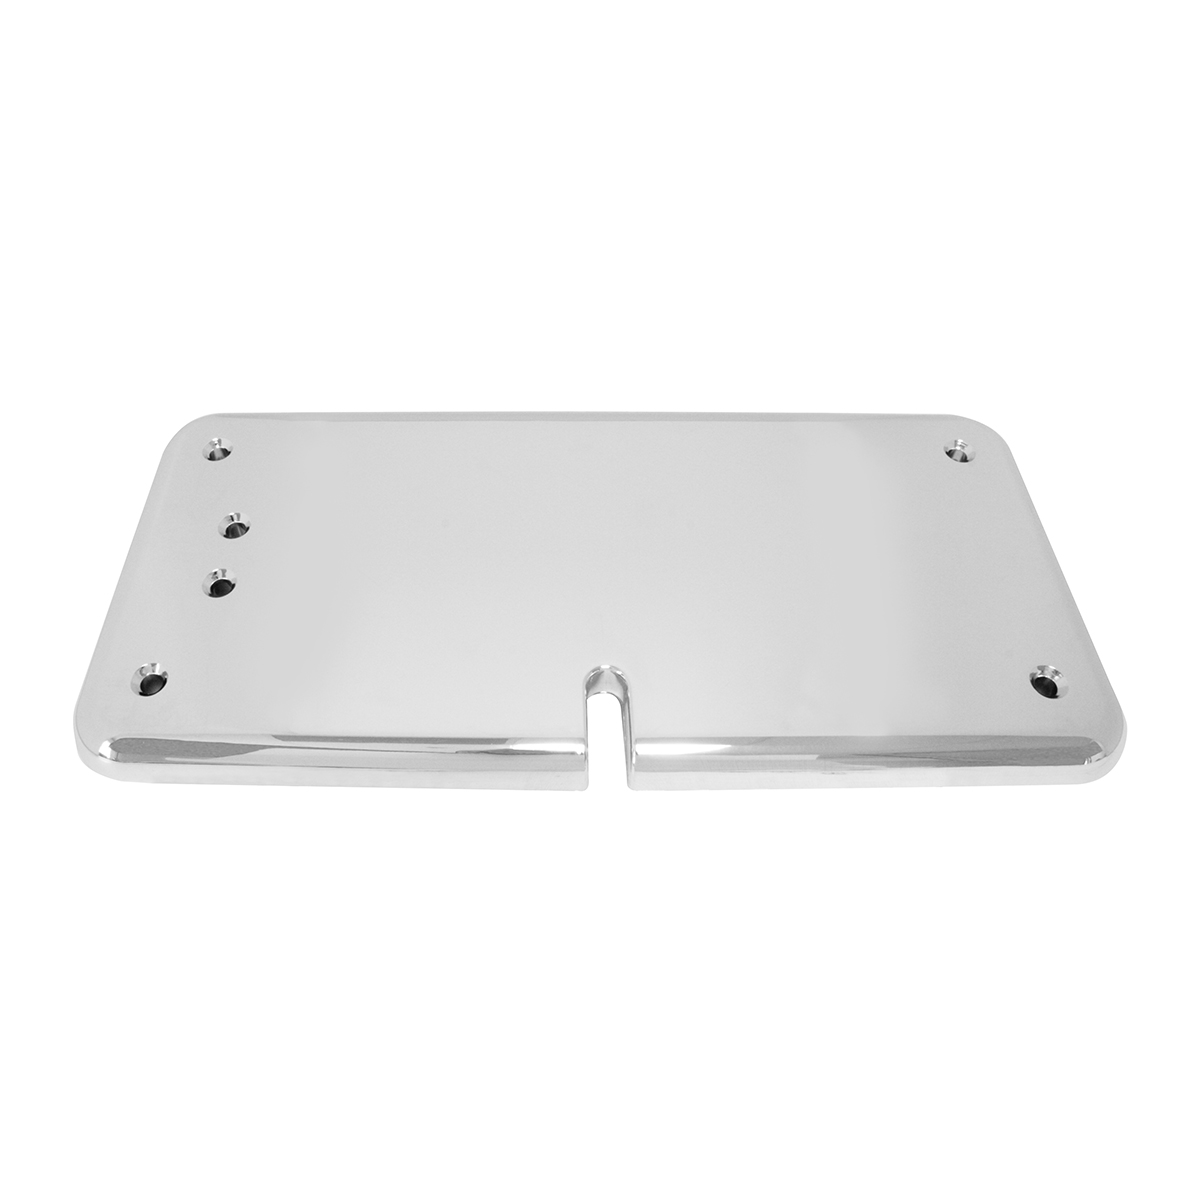 68289 CB Radio Trim Plate for Peterbilt